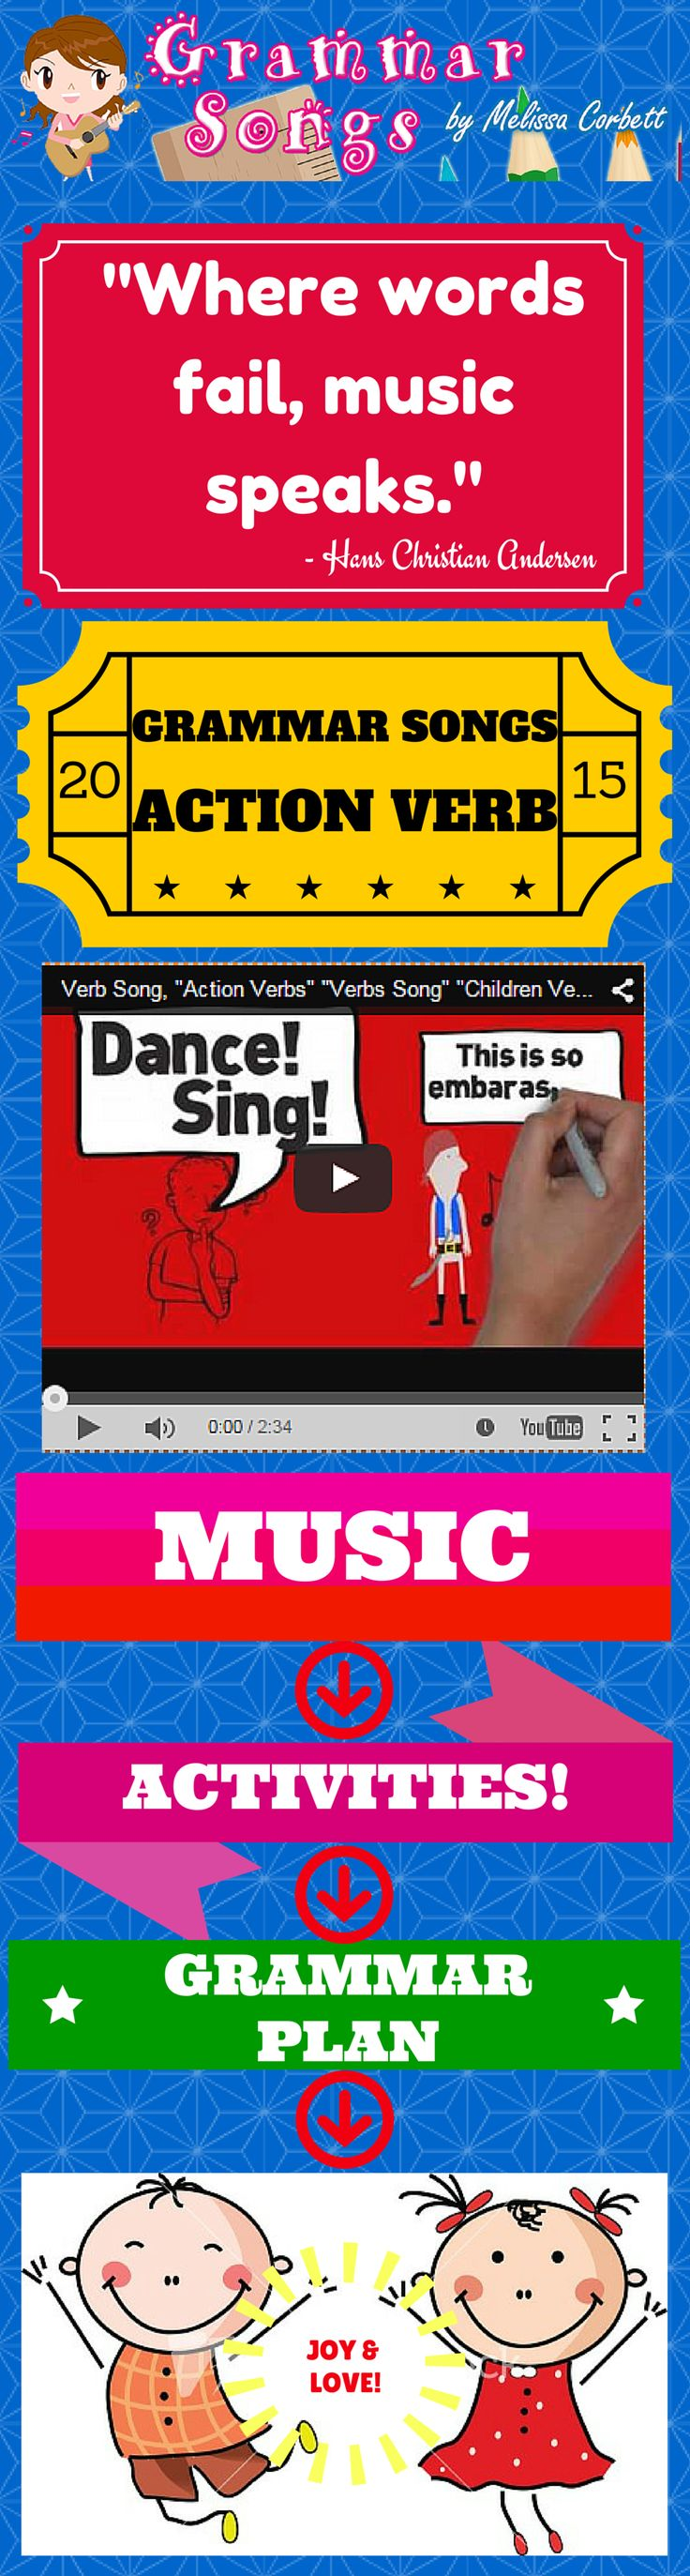 Free...Grammar Songs, Action Verbs...Verb Song New by Melissa... This song not only illustrates clearly the concept of the action verb, but it demonstrates in an effective way why verbs are necessary when writing. Although the concept of an action verb is a simple concept, this song takes verbs further than the level of identification as a part of speech. The addition of the importance of the action verb (and quality of action verb used) is relevant to all elementary grade levels.